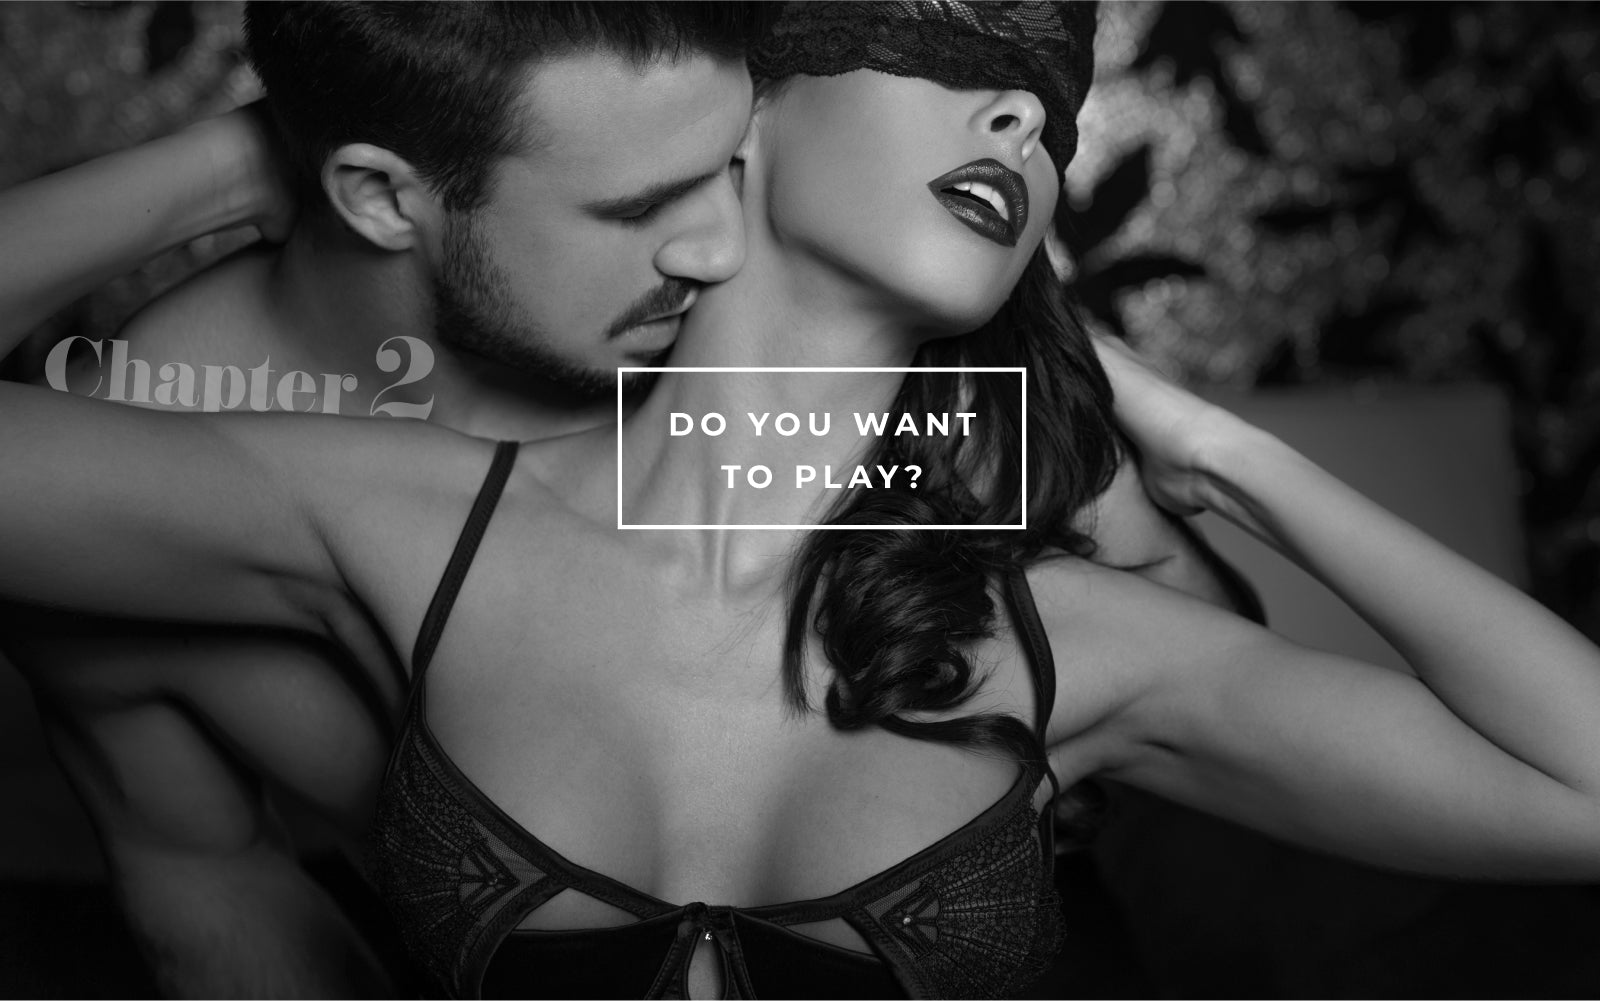 DO YOU WANT TO PLAY